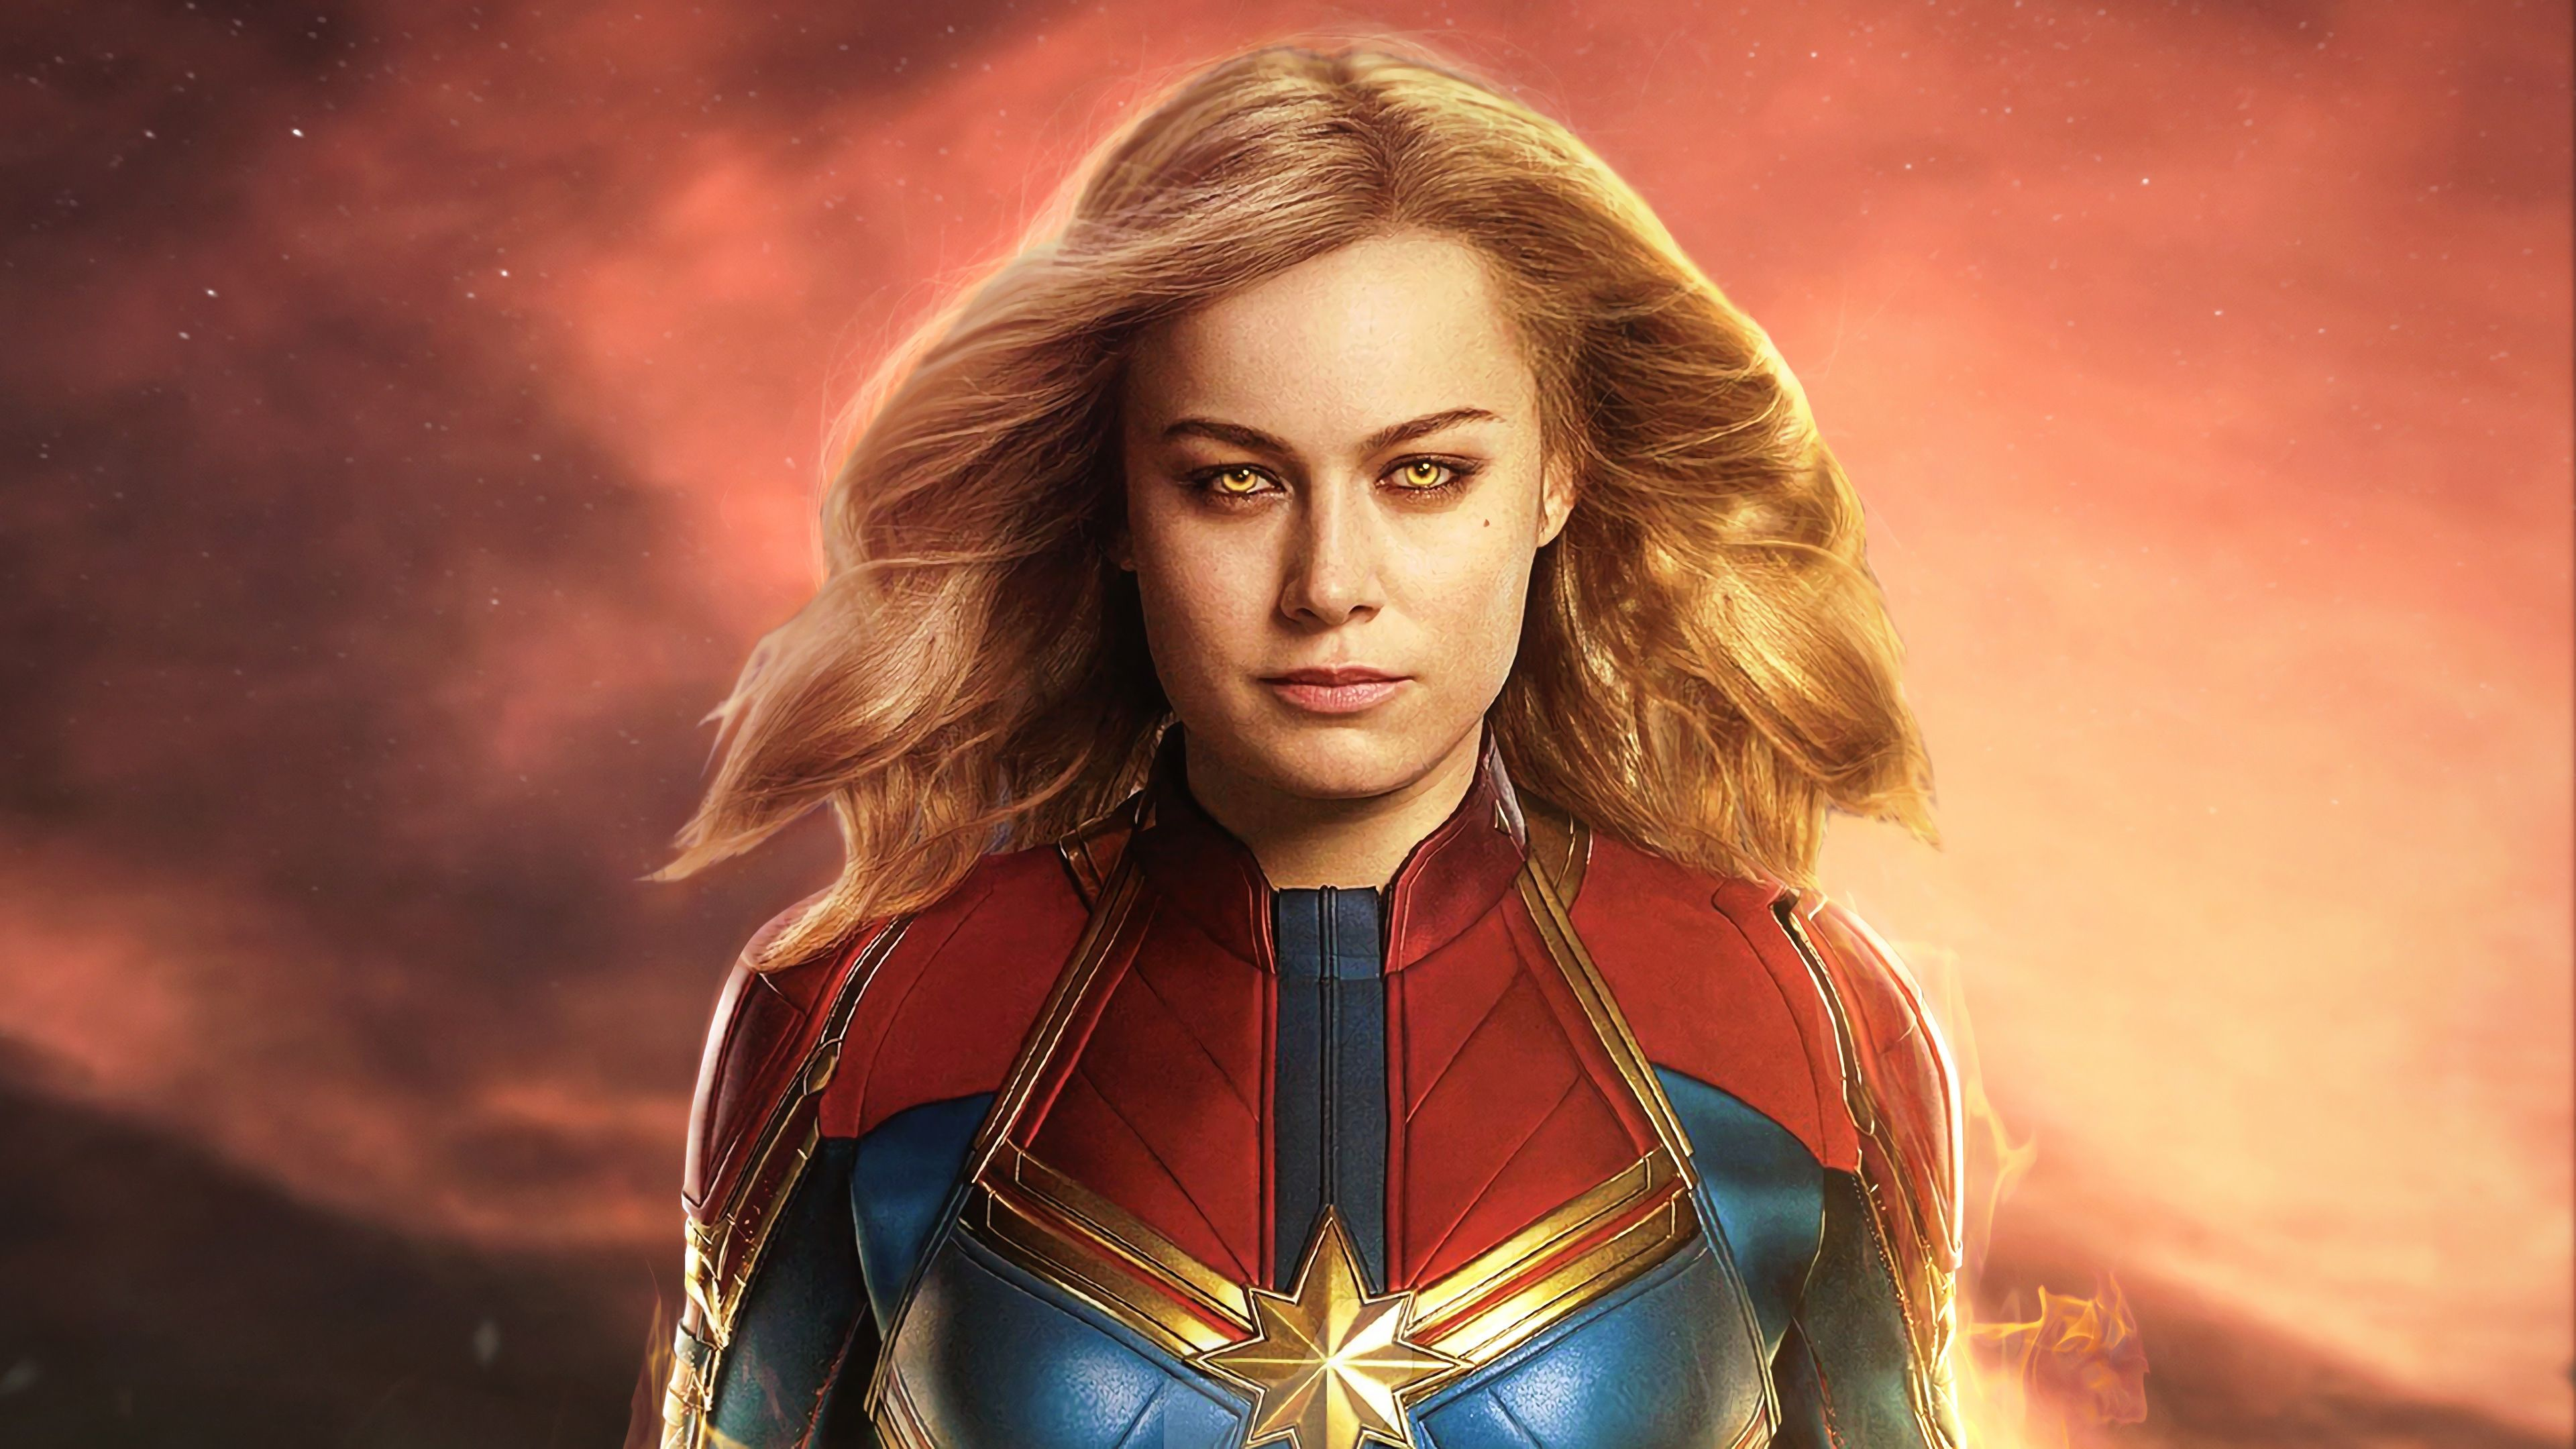 20 Captain Marvel 2019 Movie Wallpapers On Wallpapersafari